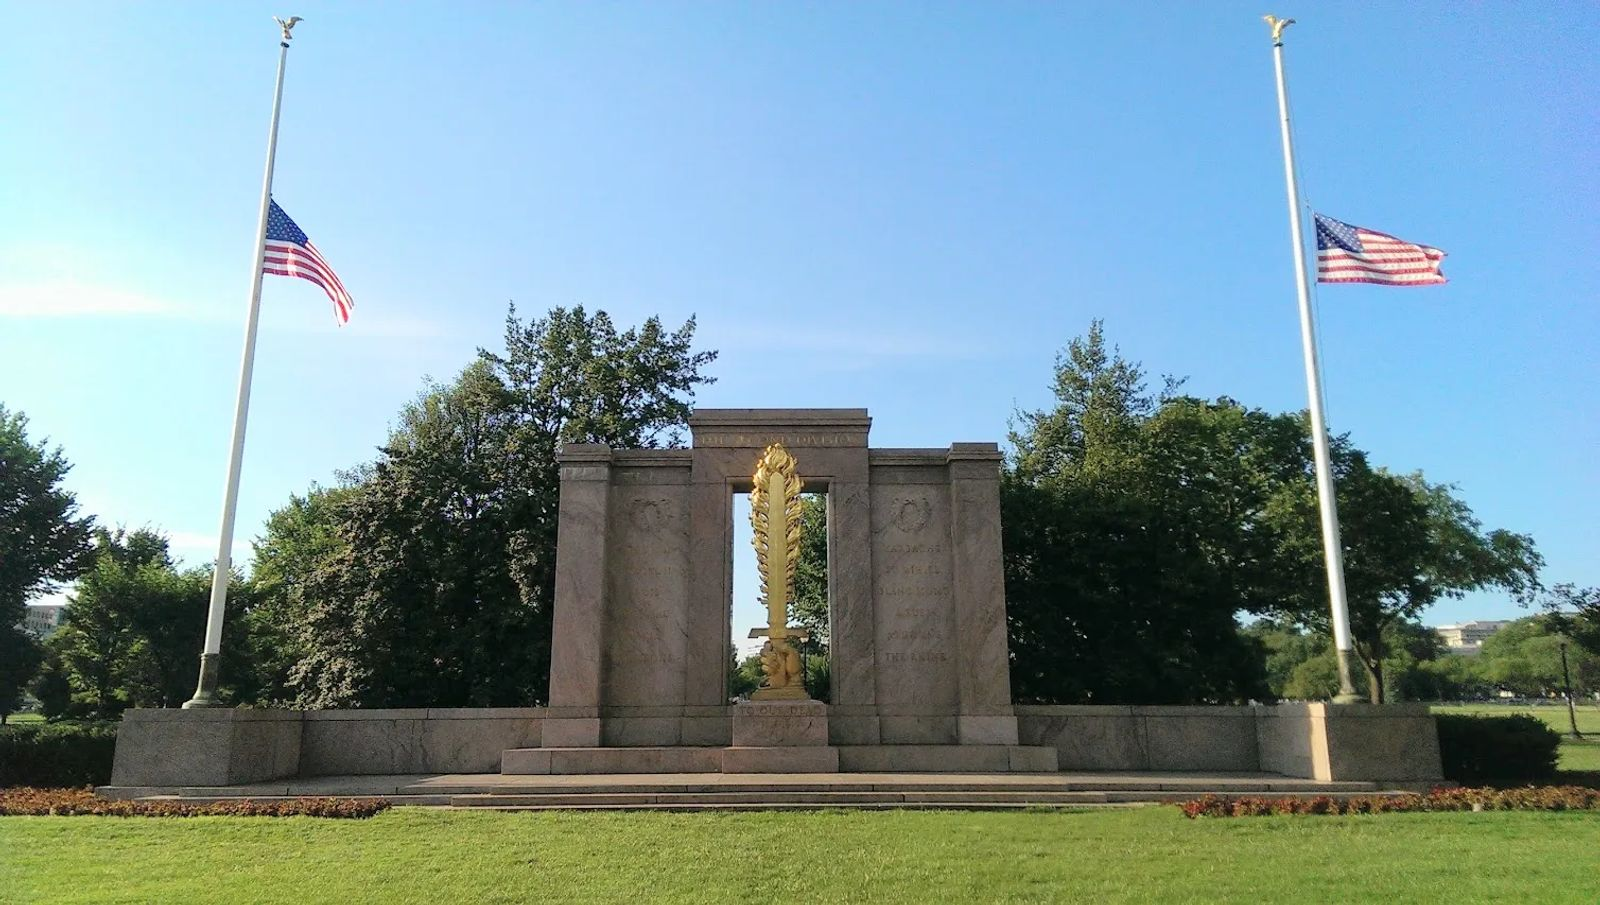 Photo of the Second Division Memorial in Washington, DC